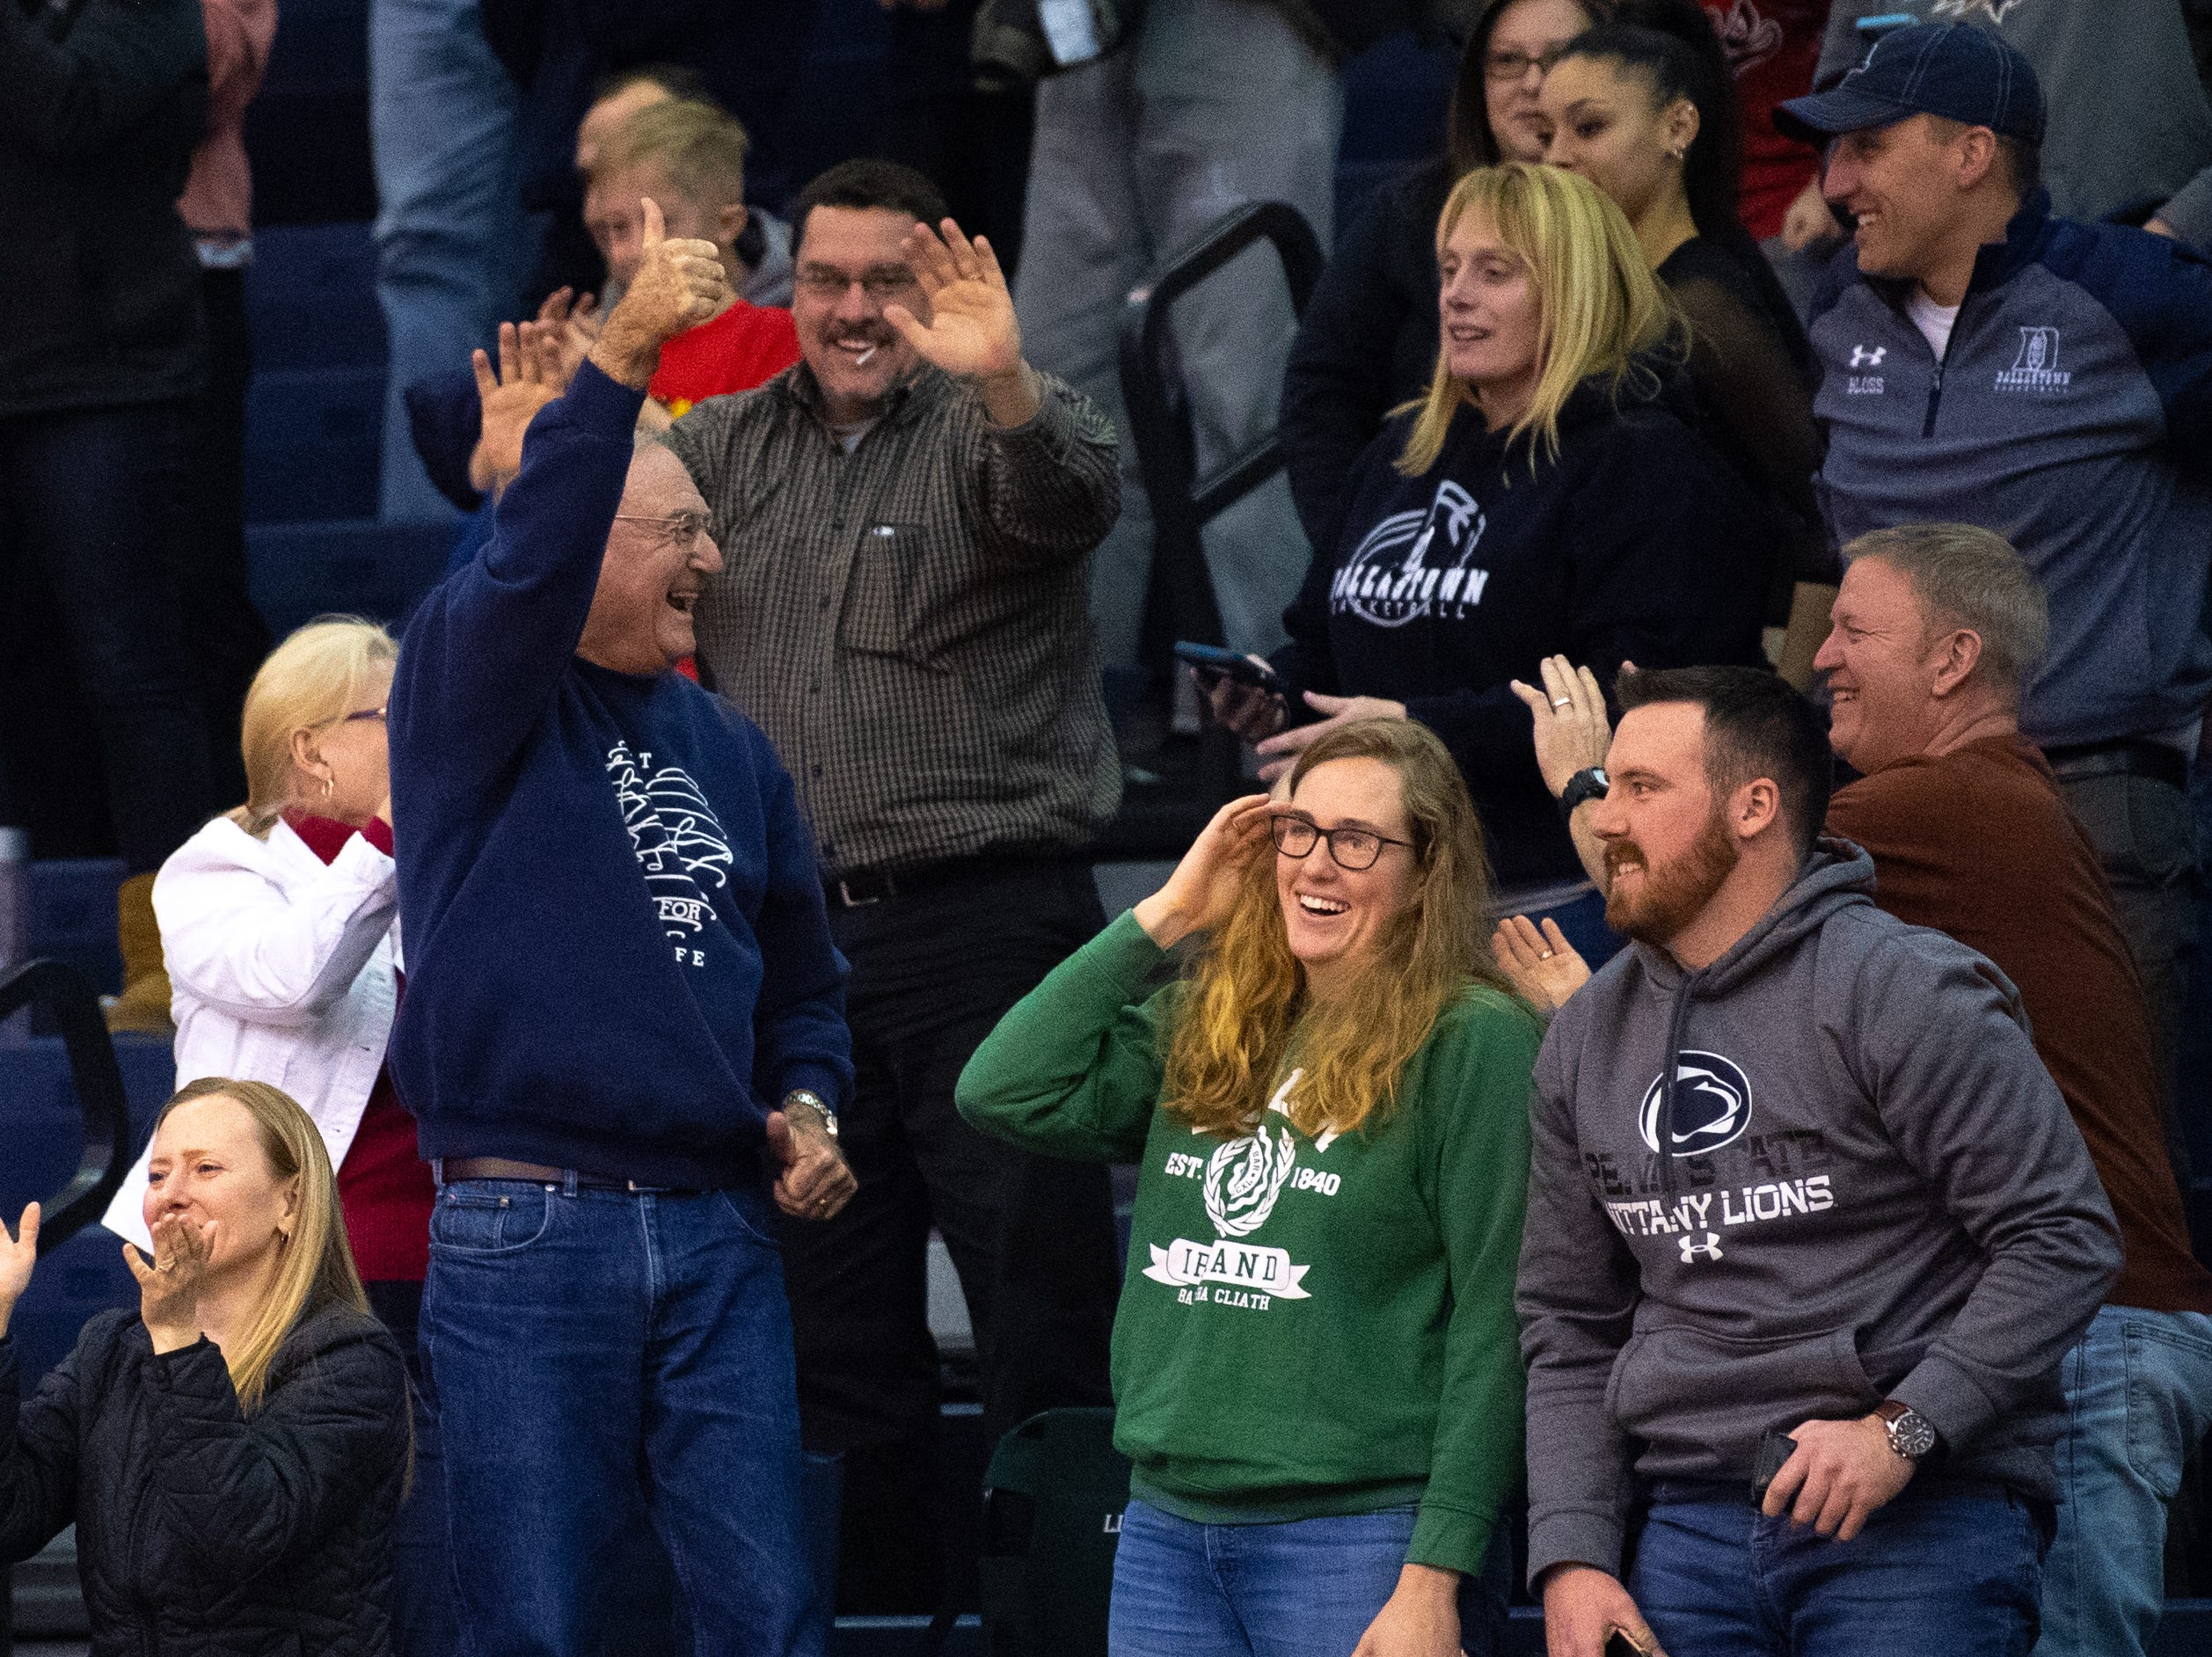 Dallastown parents celebrate a nail biting victory after the YAIAA girls' basketball game between Dallastown and South Western, Tuesday, January 22, 2019. The Wildcats defeated the Mustangs 38-35.